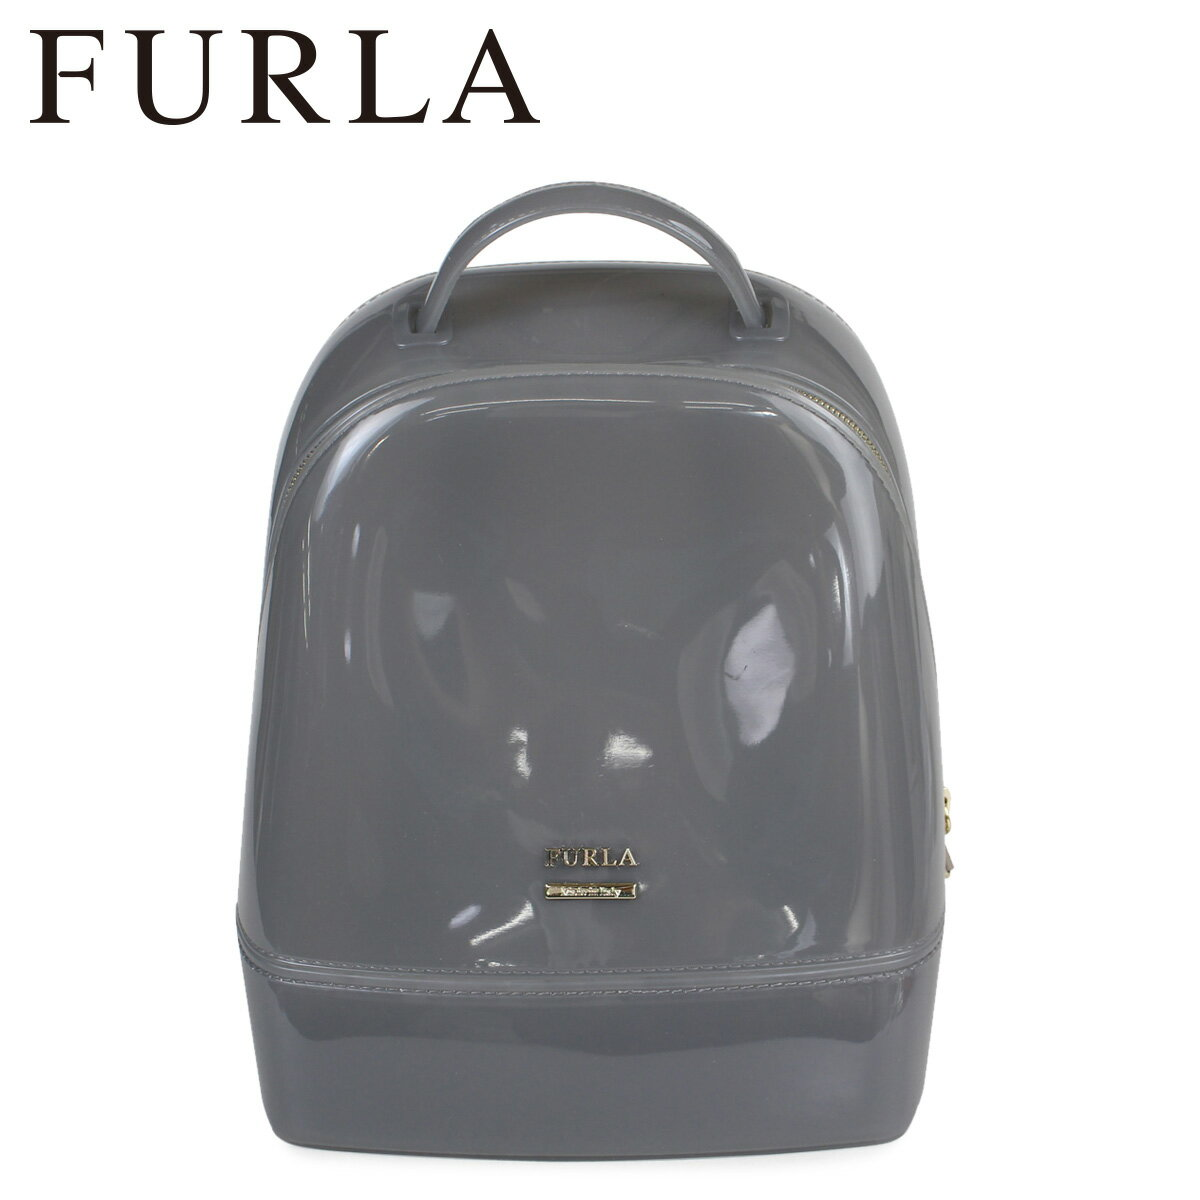 【SOLD OUT】 FURLA CANDY S BACK PACK RPSA フルラ バッグ リュック バックパック レディース グレー 885219